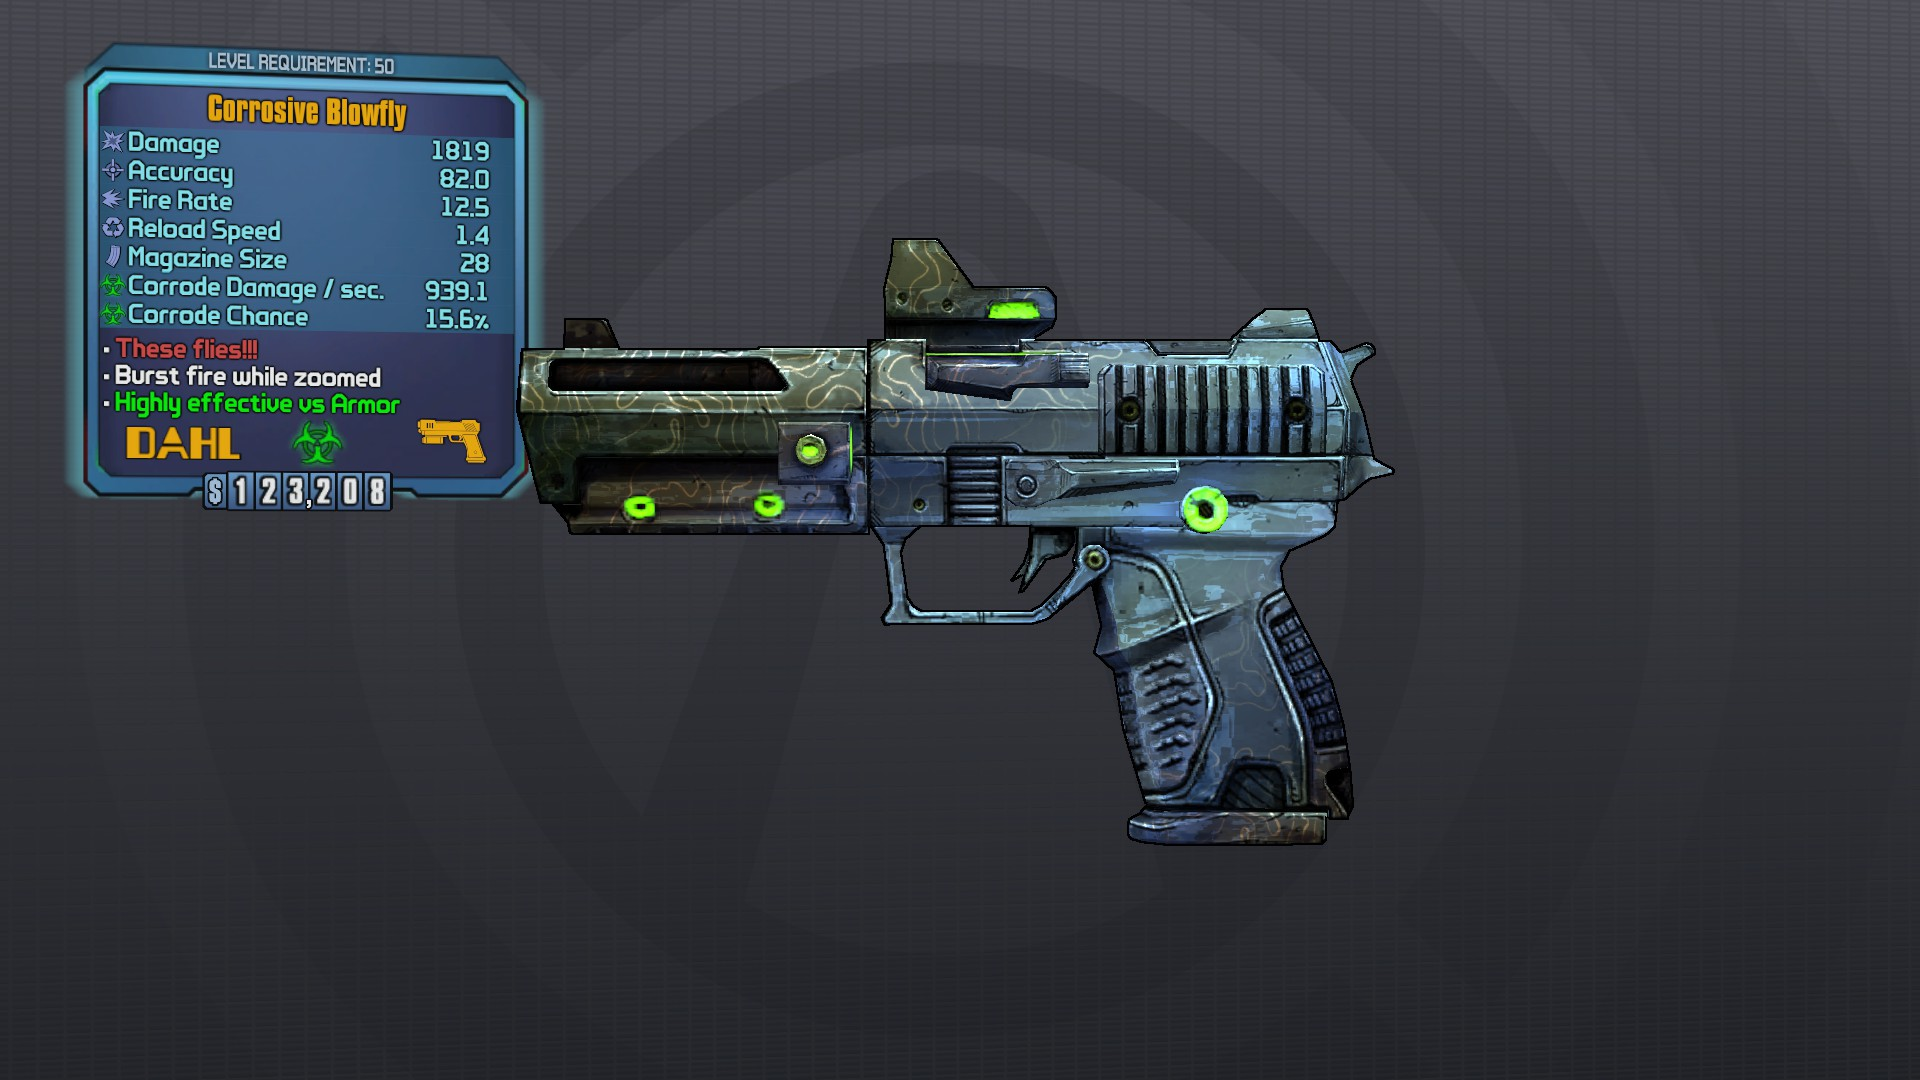 Images of Borderlands 2 Legendary Weapons - #rock-cafe